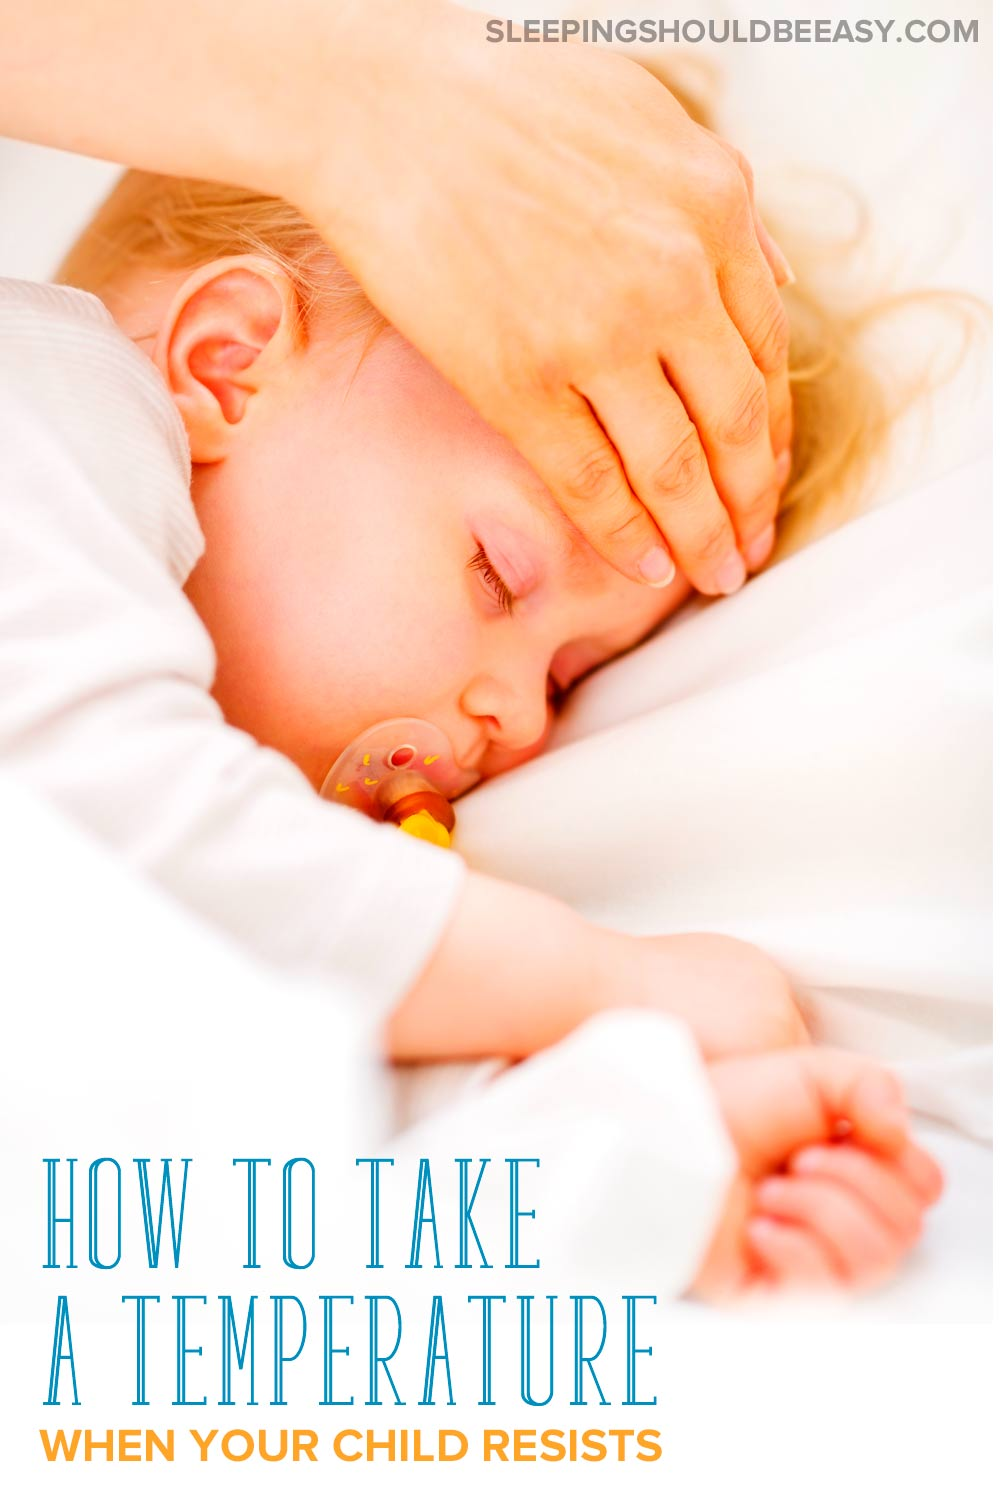 How to take a child